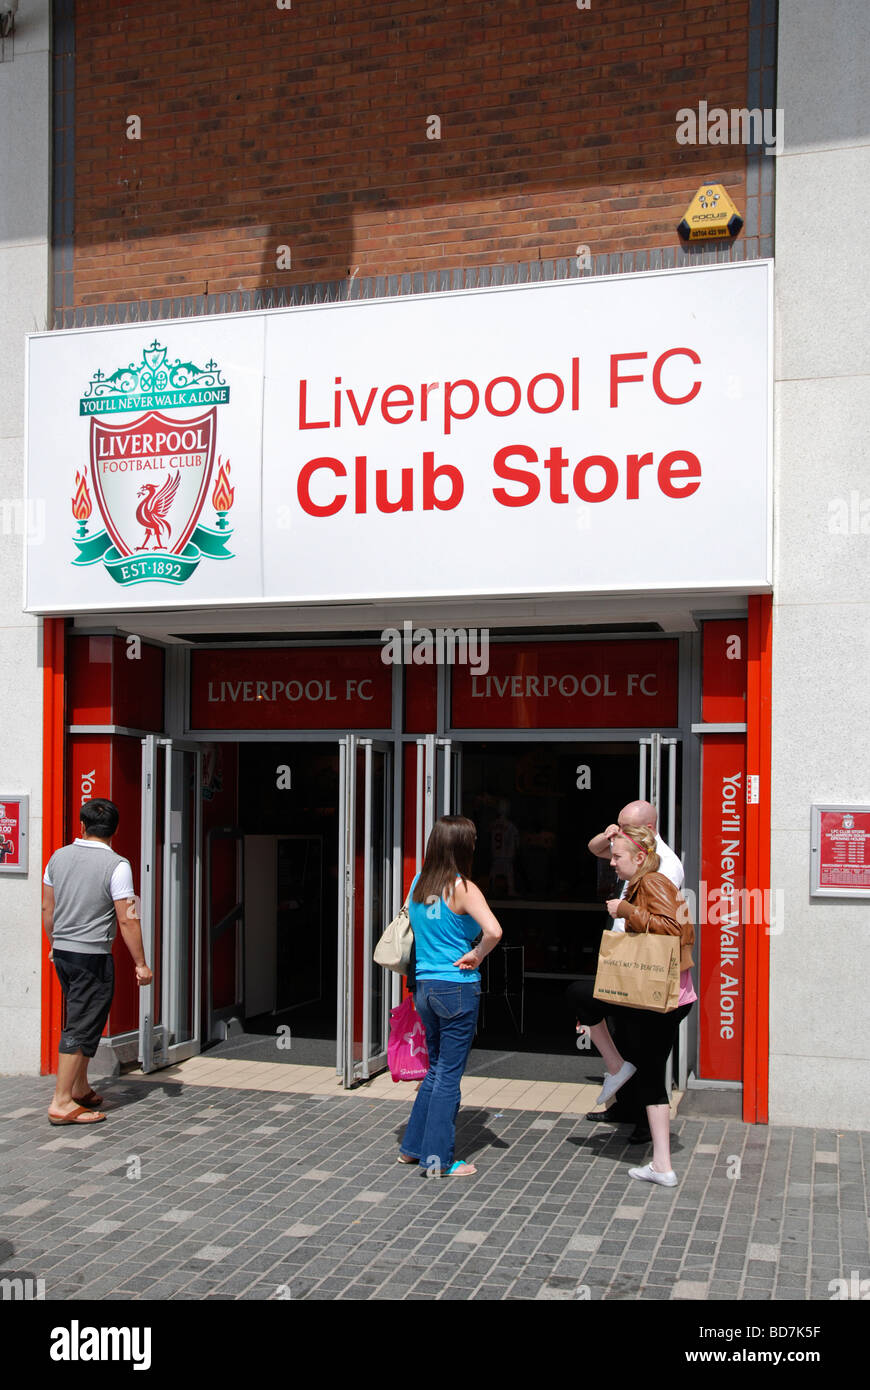 liverpool football club shop in the city centre, liverpool, uk - Stock Image